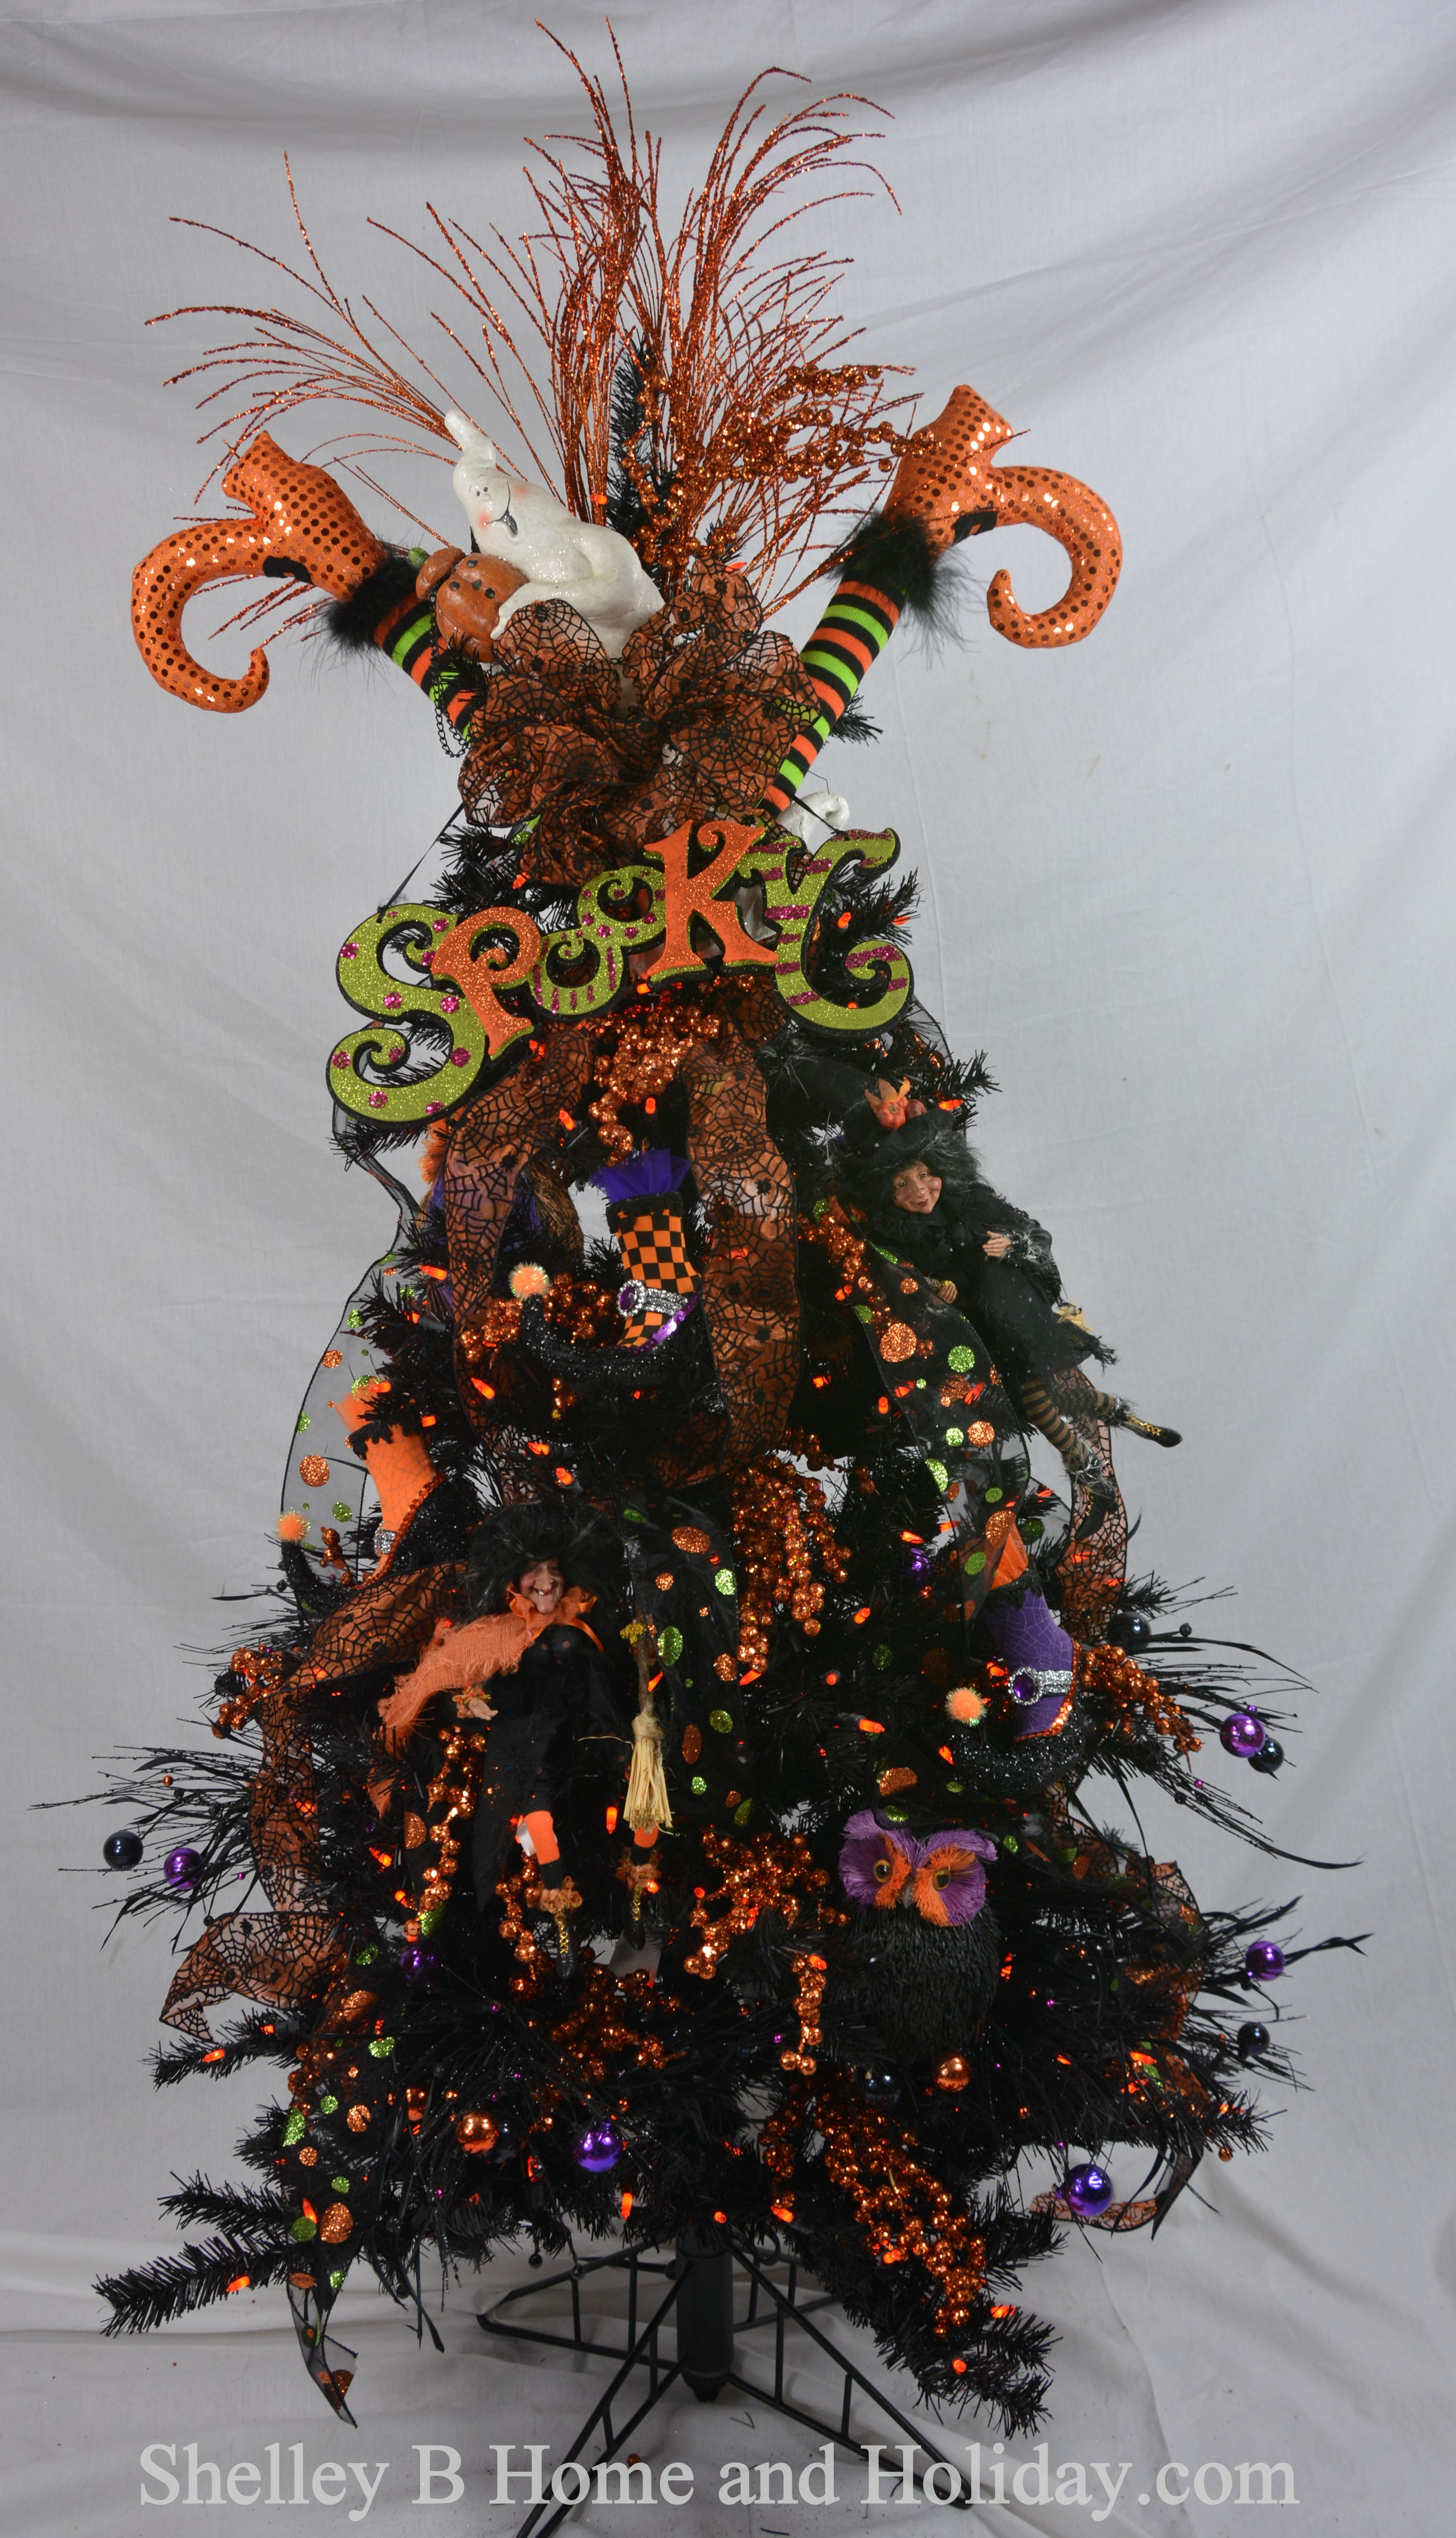 shelley b ghost top halloween tree decorate a tree for halloween and give your witches - Raz Halloween Decorations